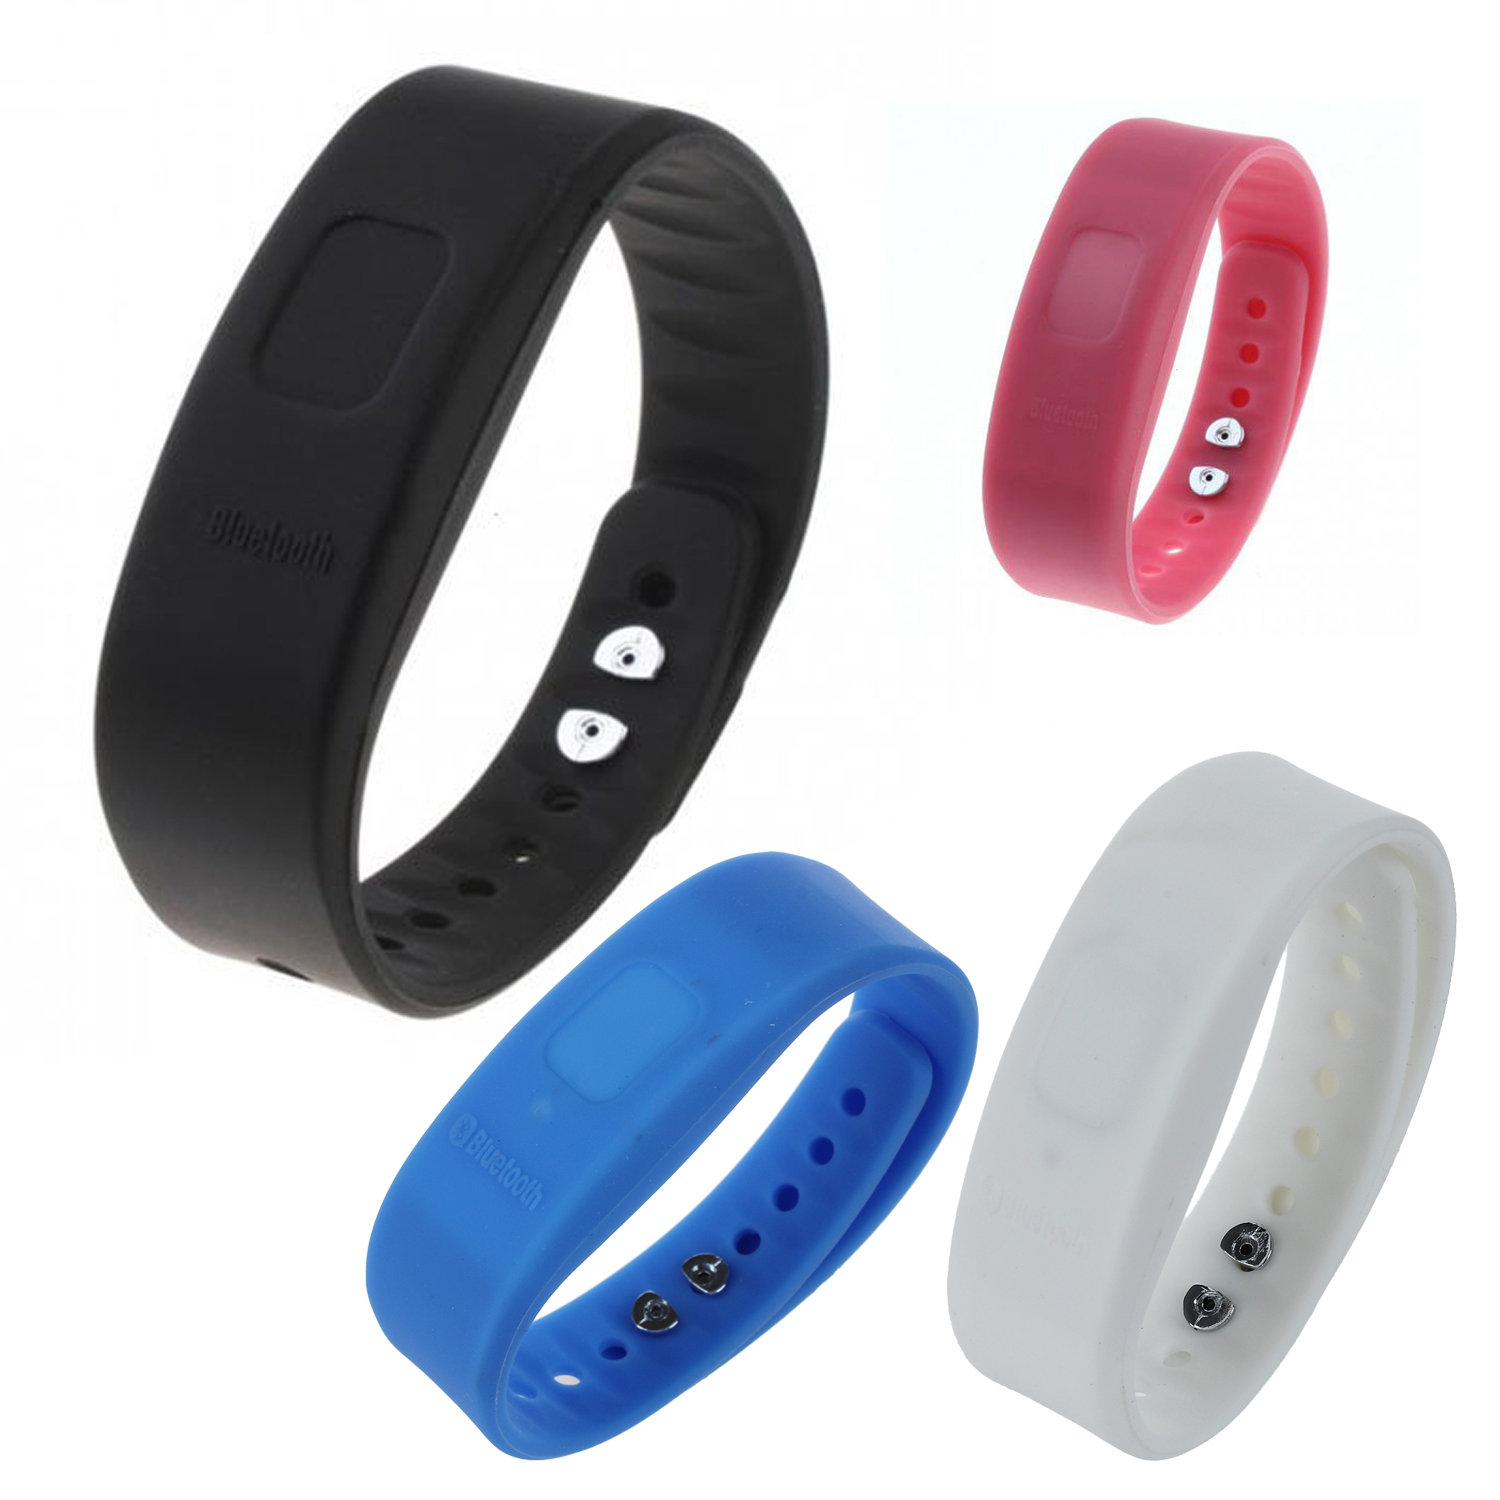 usb bluetooth incoming call vibrate alert anti lost band bracelet s ebay. Black Bedroom Furniture Sets. Home Design Ideas